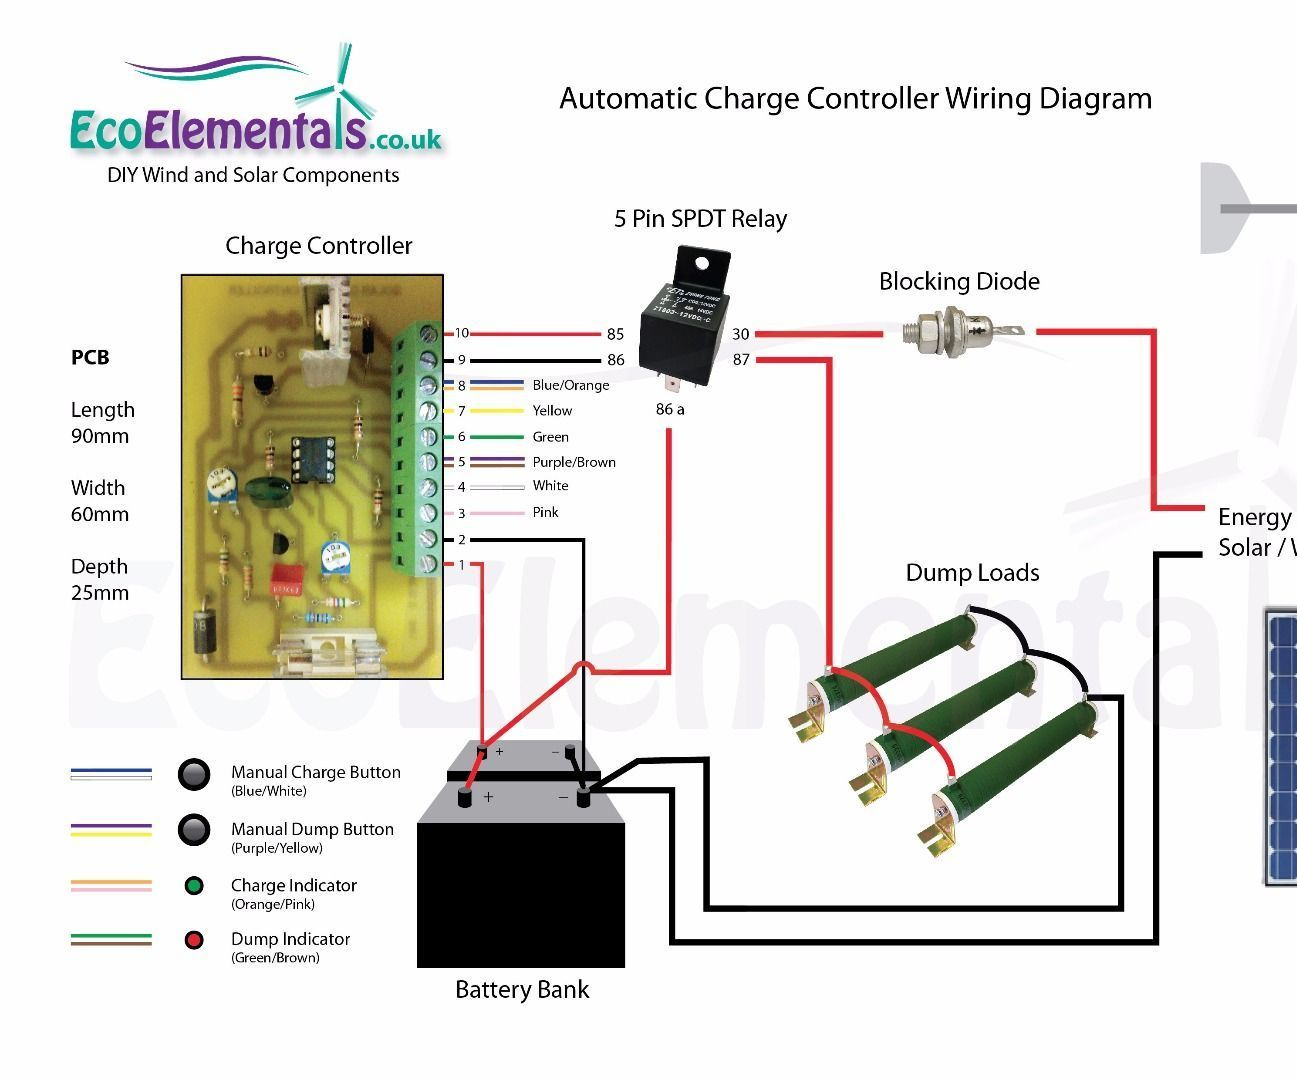 Charge Controller Wiring Diagram For Diy Wind Turbine Or Solar Panels Diy Wind Turbine Solar Energy Solutions Solar Power Facts